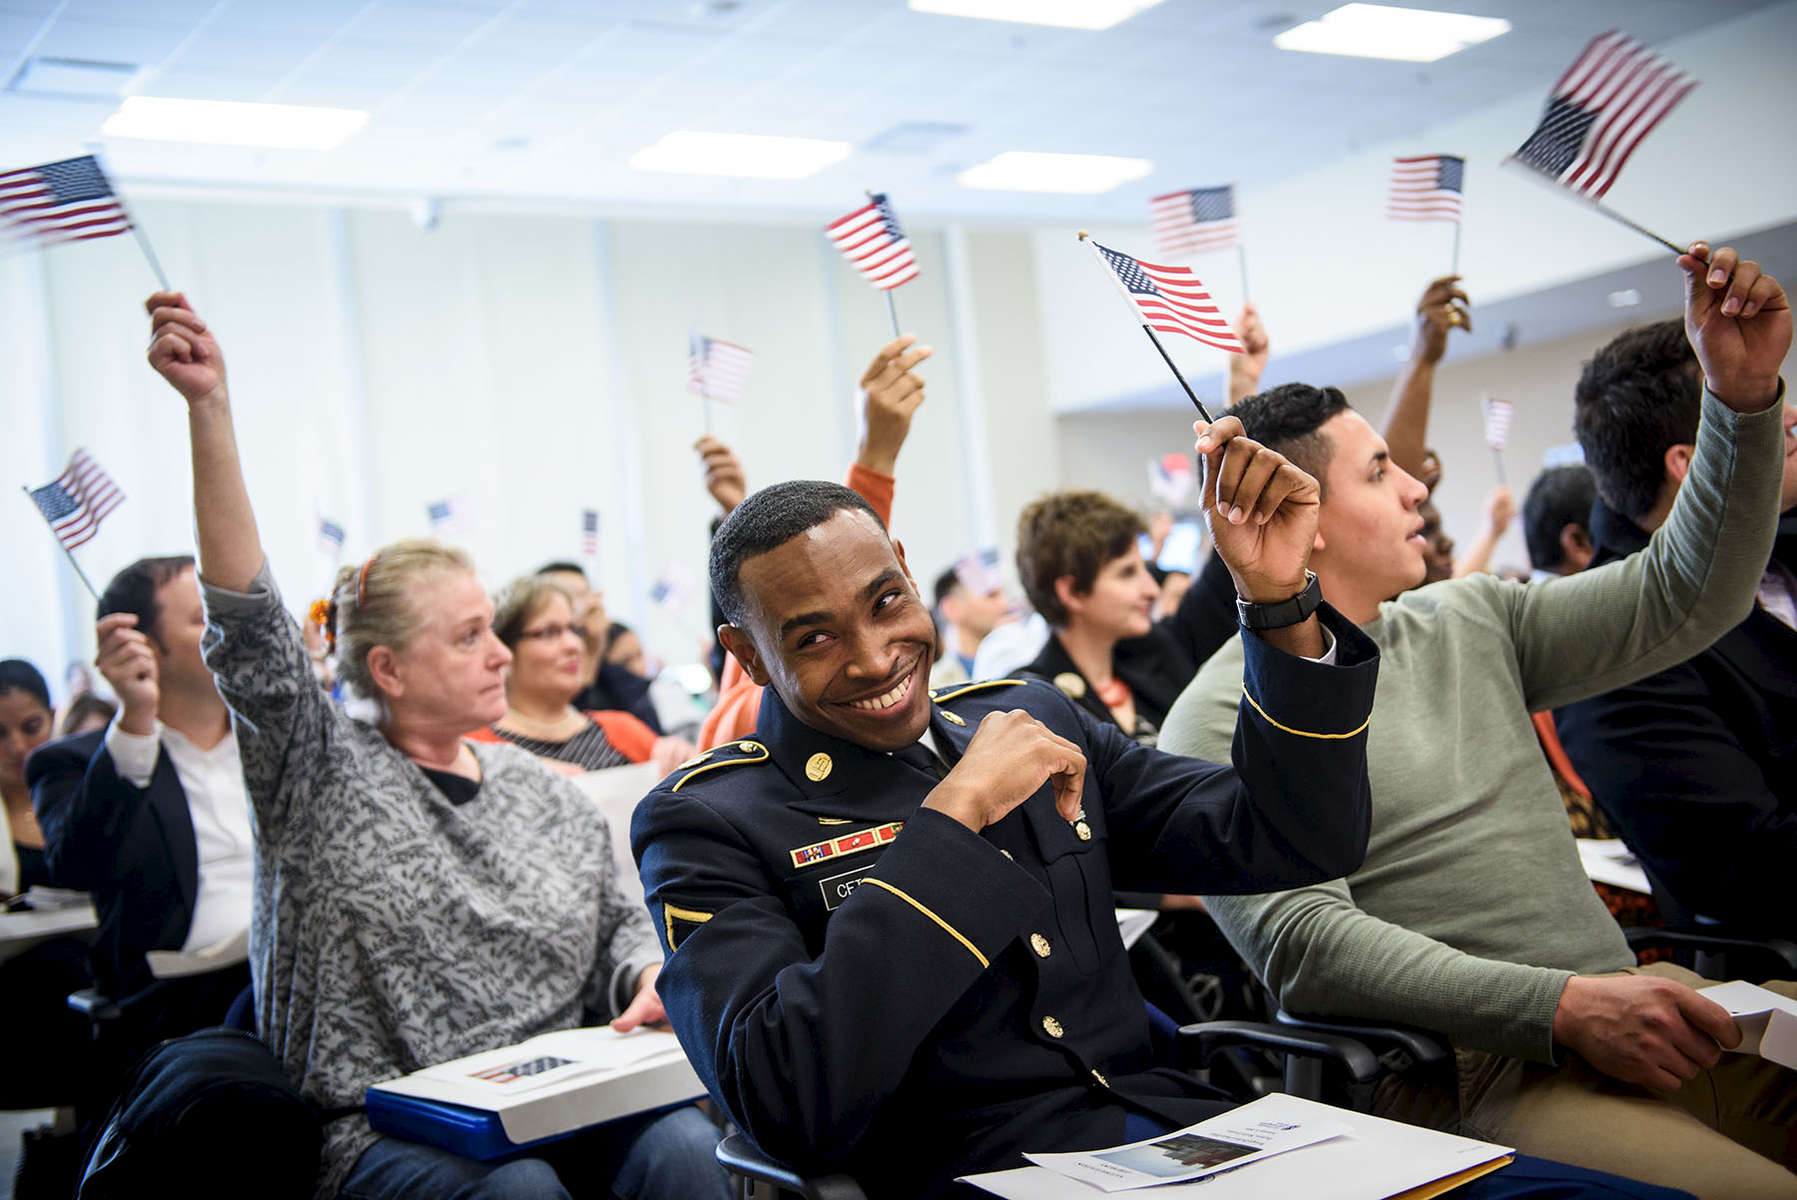 First Place | FeatureAndrew Craft, The Fayetteville ObserverPvt. Mookerdjee Cetoute waves an American flag along with 60 other candidates during a naturalization ceremony on Friday, Feb. 5, 2016, at the U.S. Citizenship and Immigration Services Raleigh-Durham Field Office.